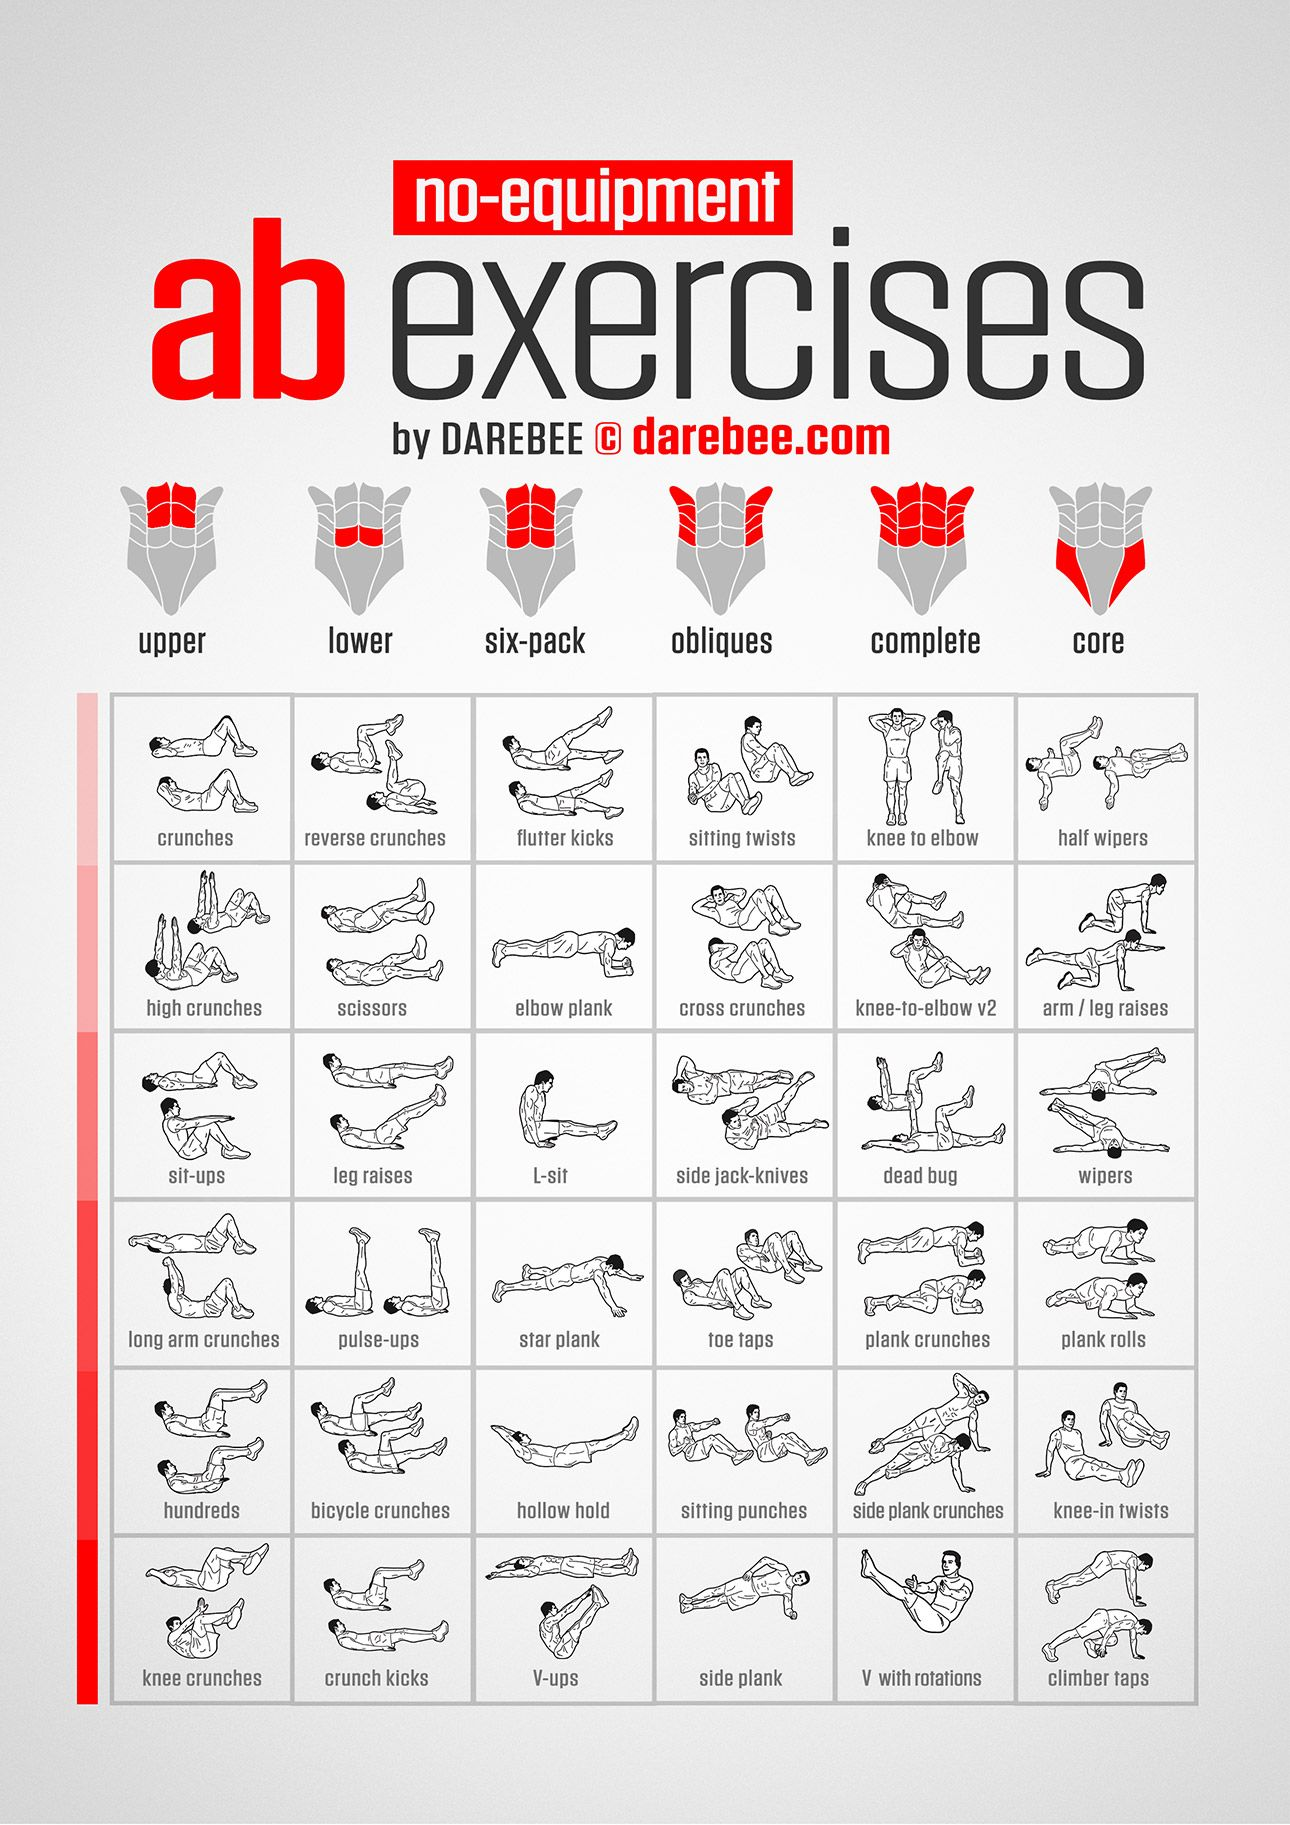 Gym Workout Chart For Chest For Men No Equipment Ab Exercises Chart Let 39s Get Physical